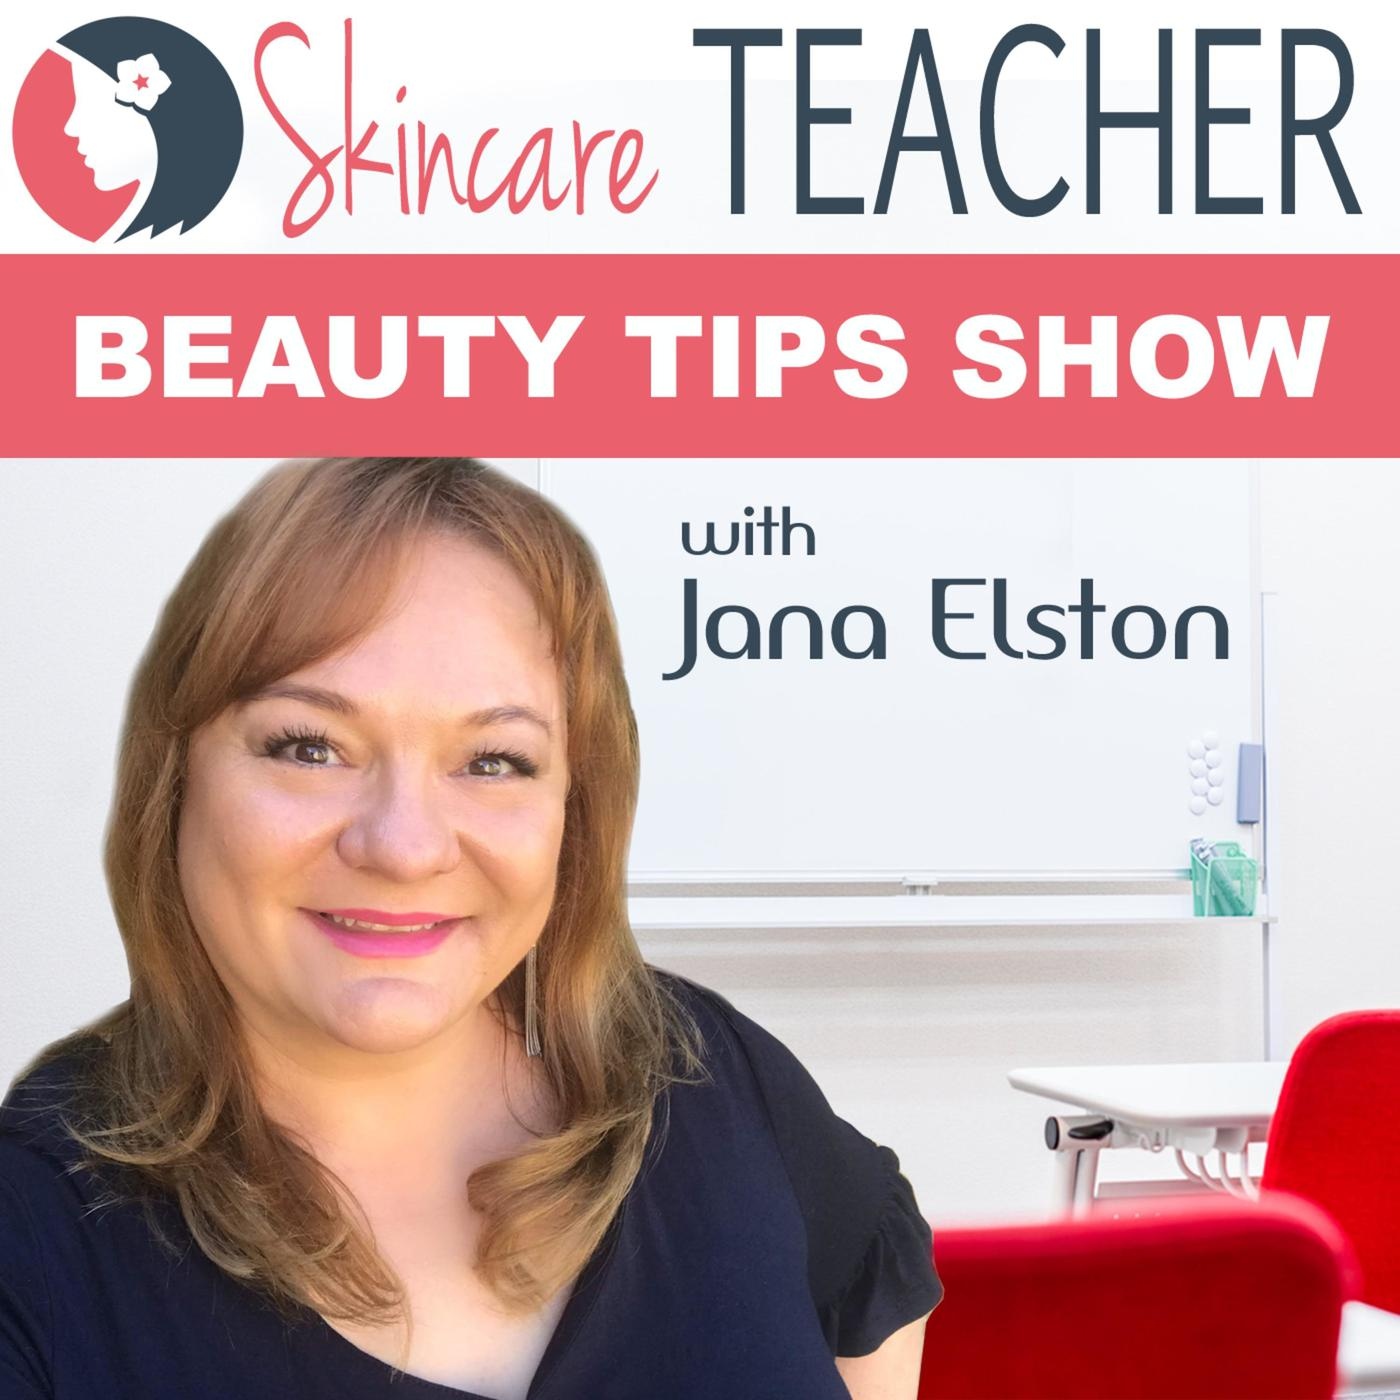 9: Have you over-exfoliated your skin? - Skincare Teacher Beauty